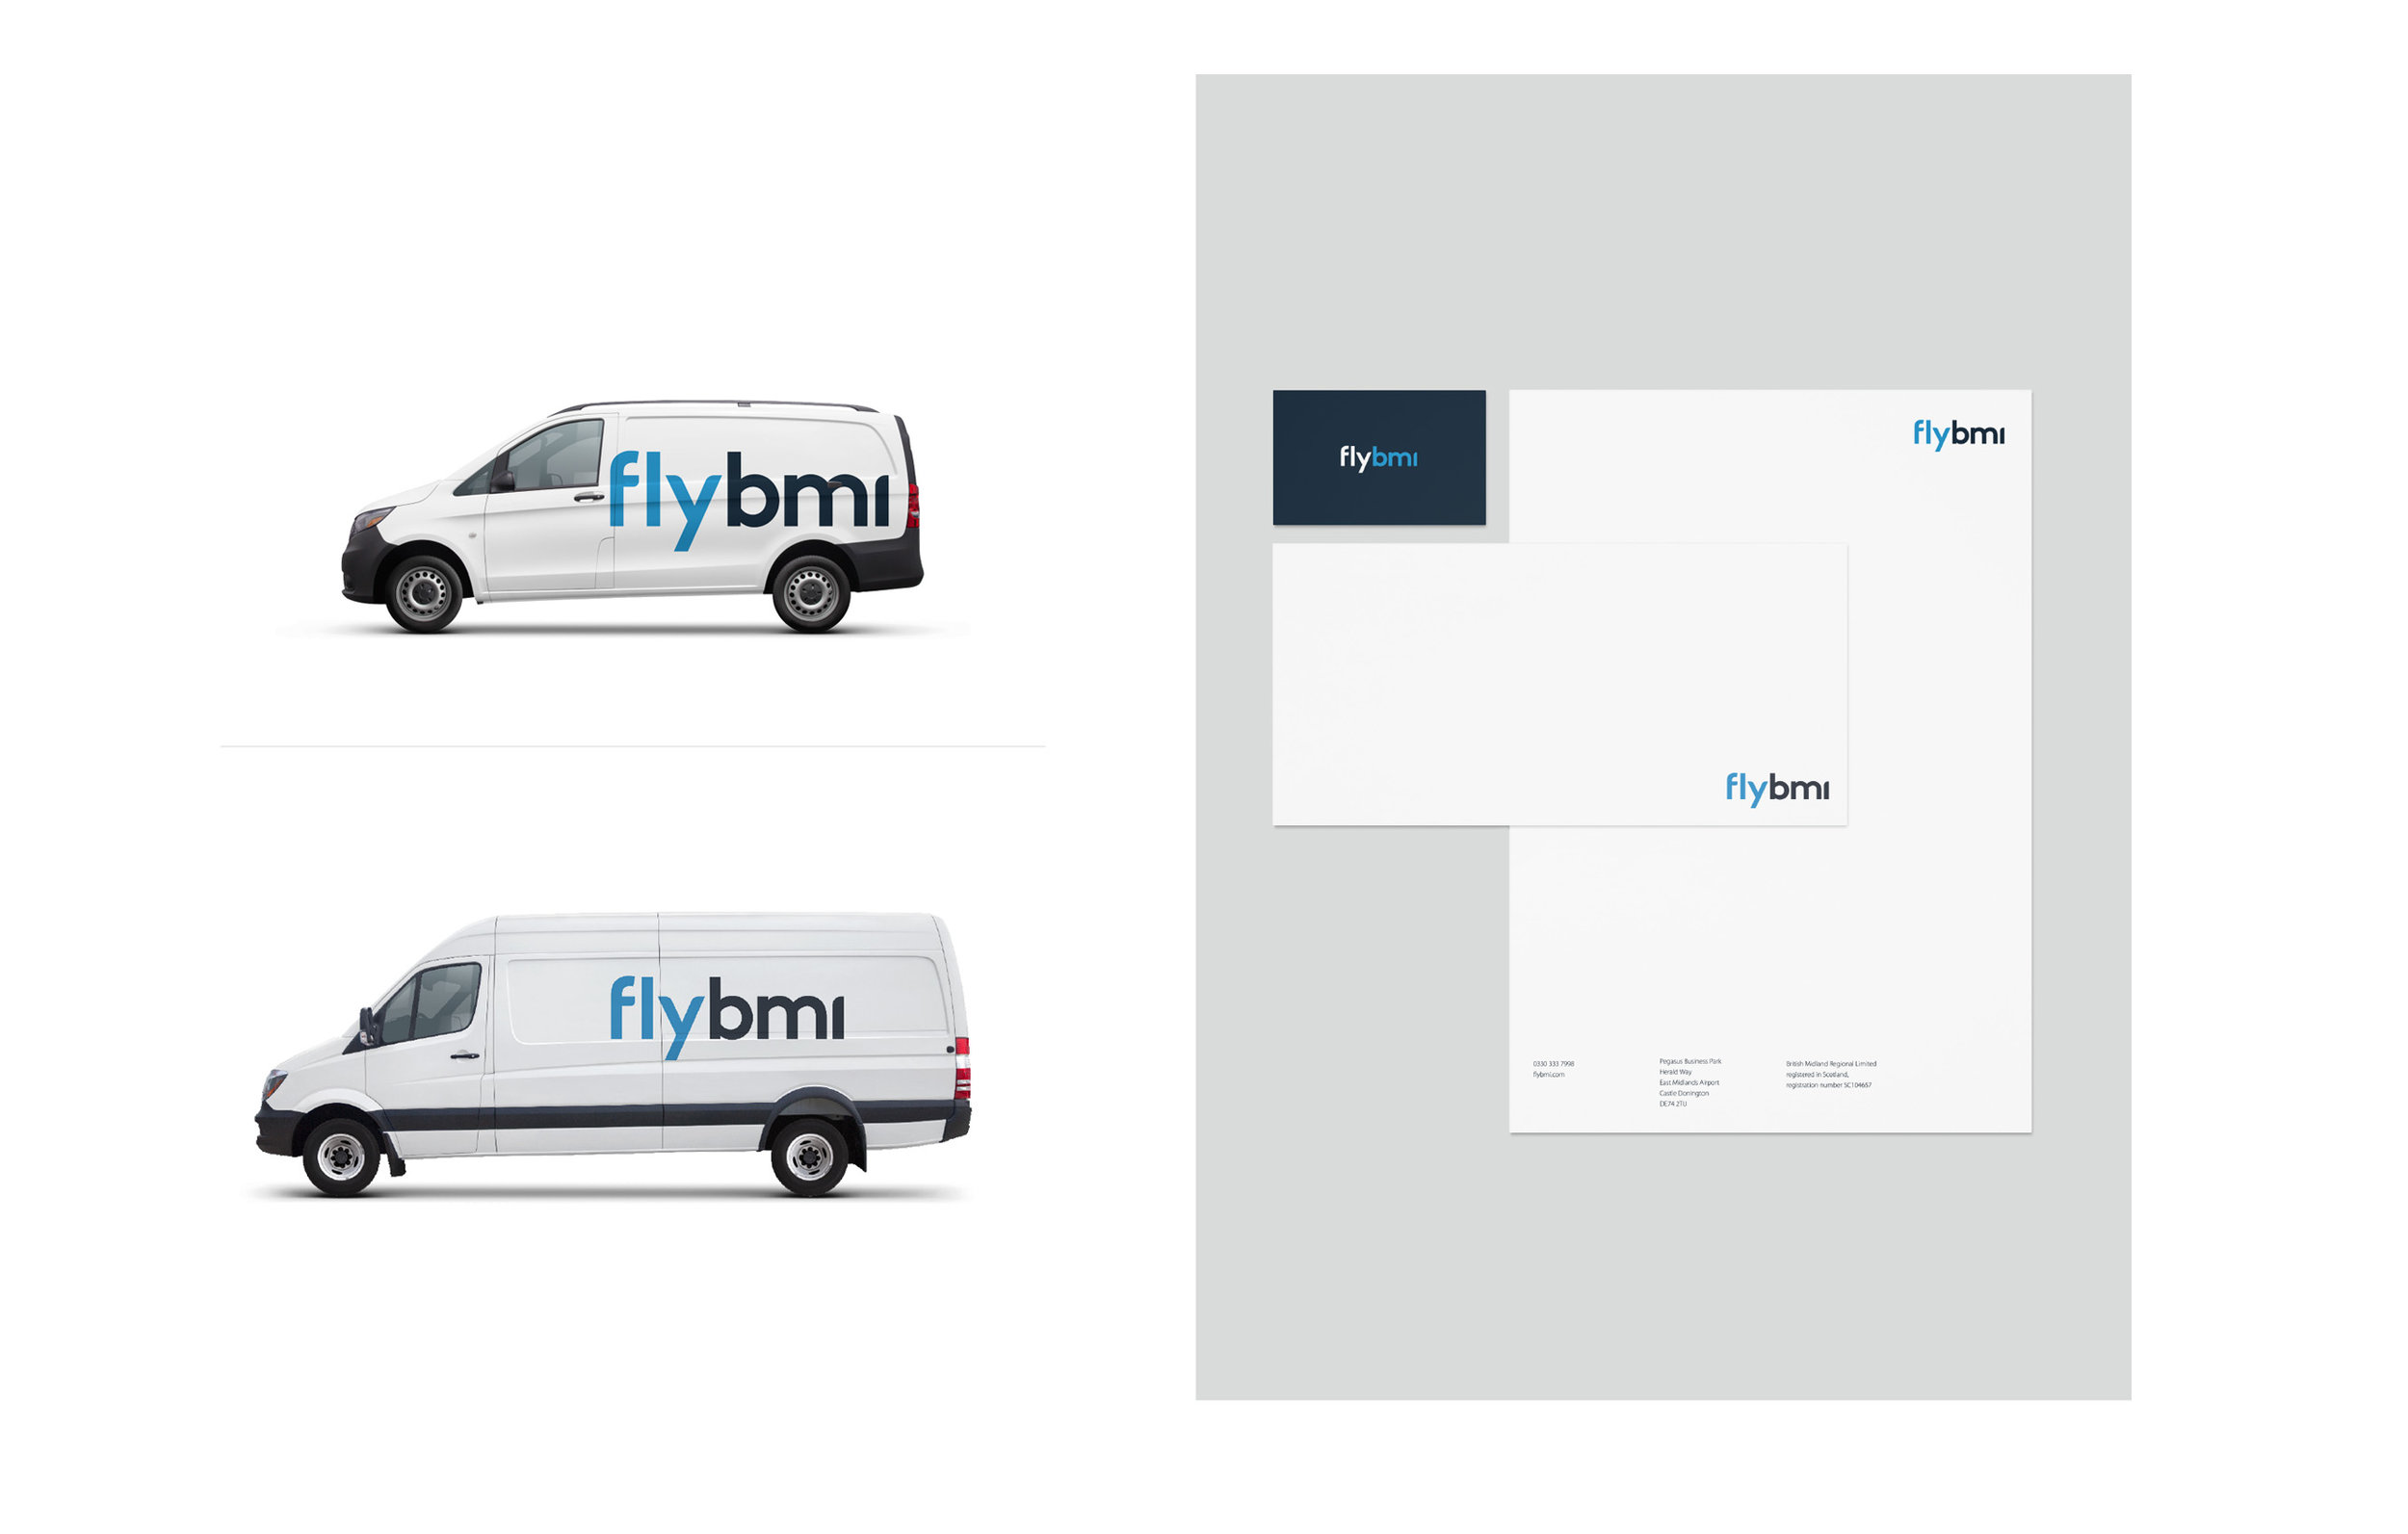 Proposed update to corporate identity